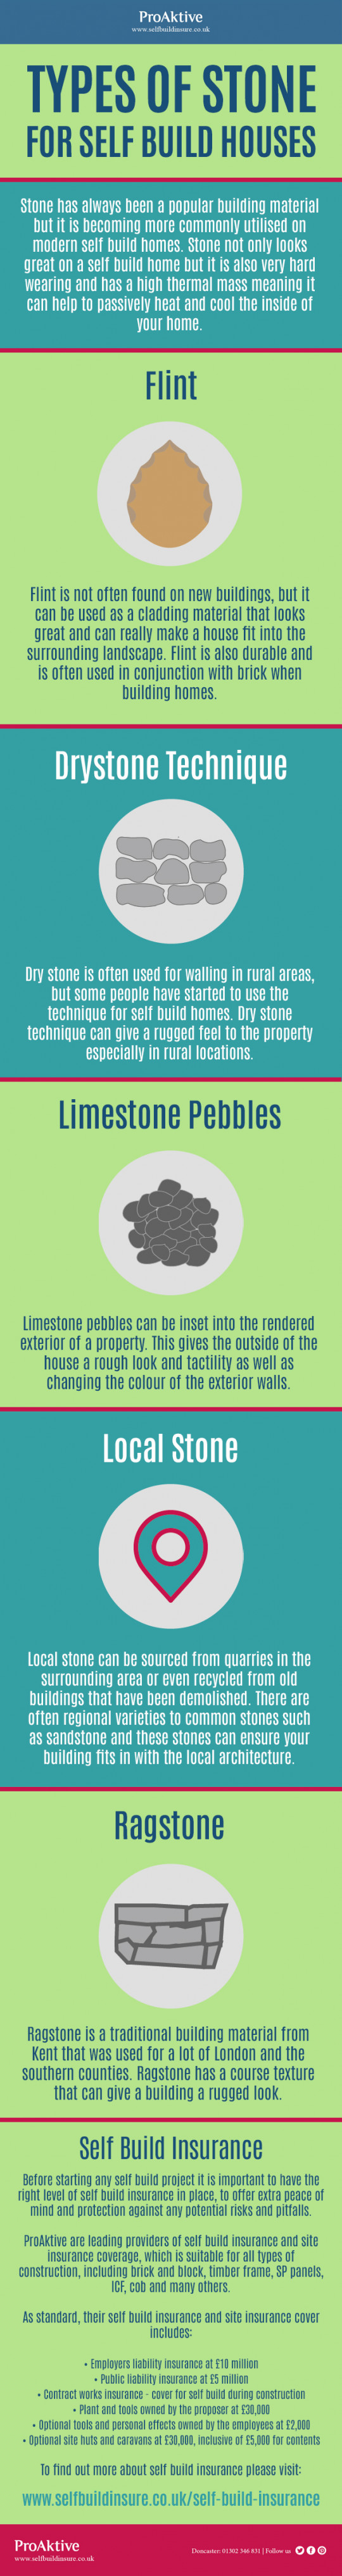 Types of Stone for Self Build Houses